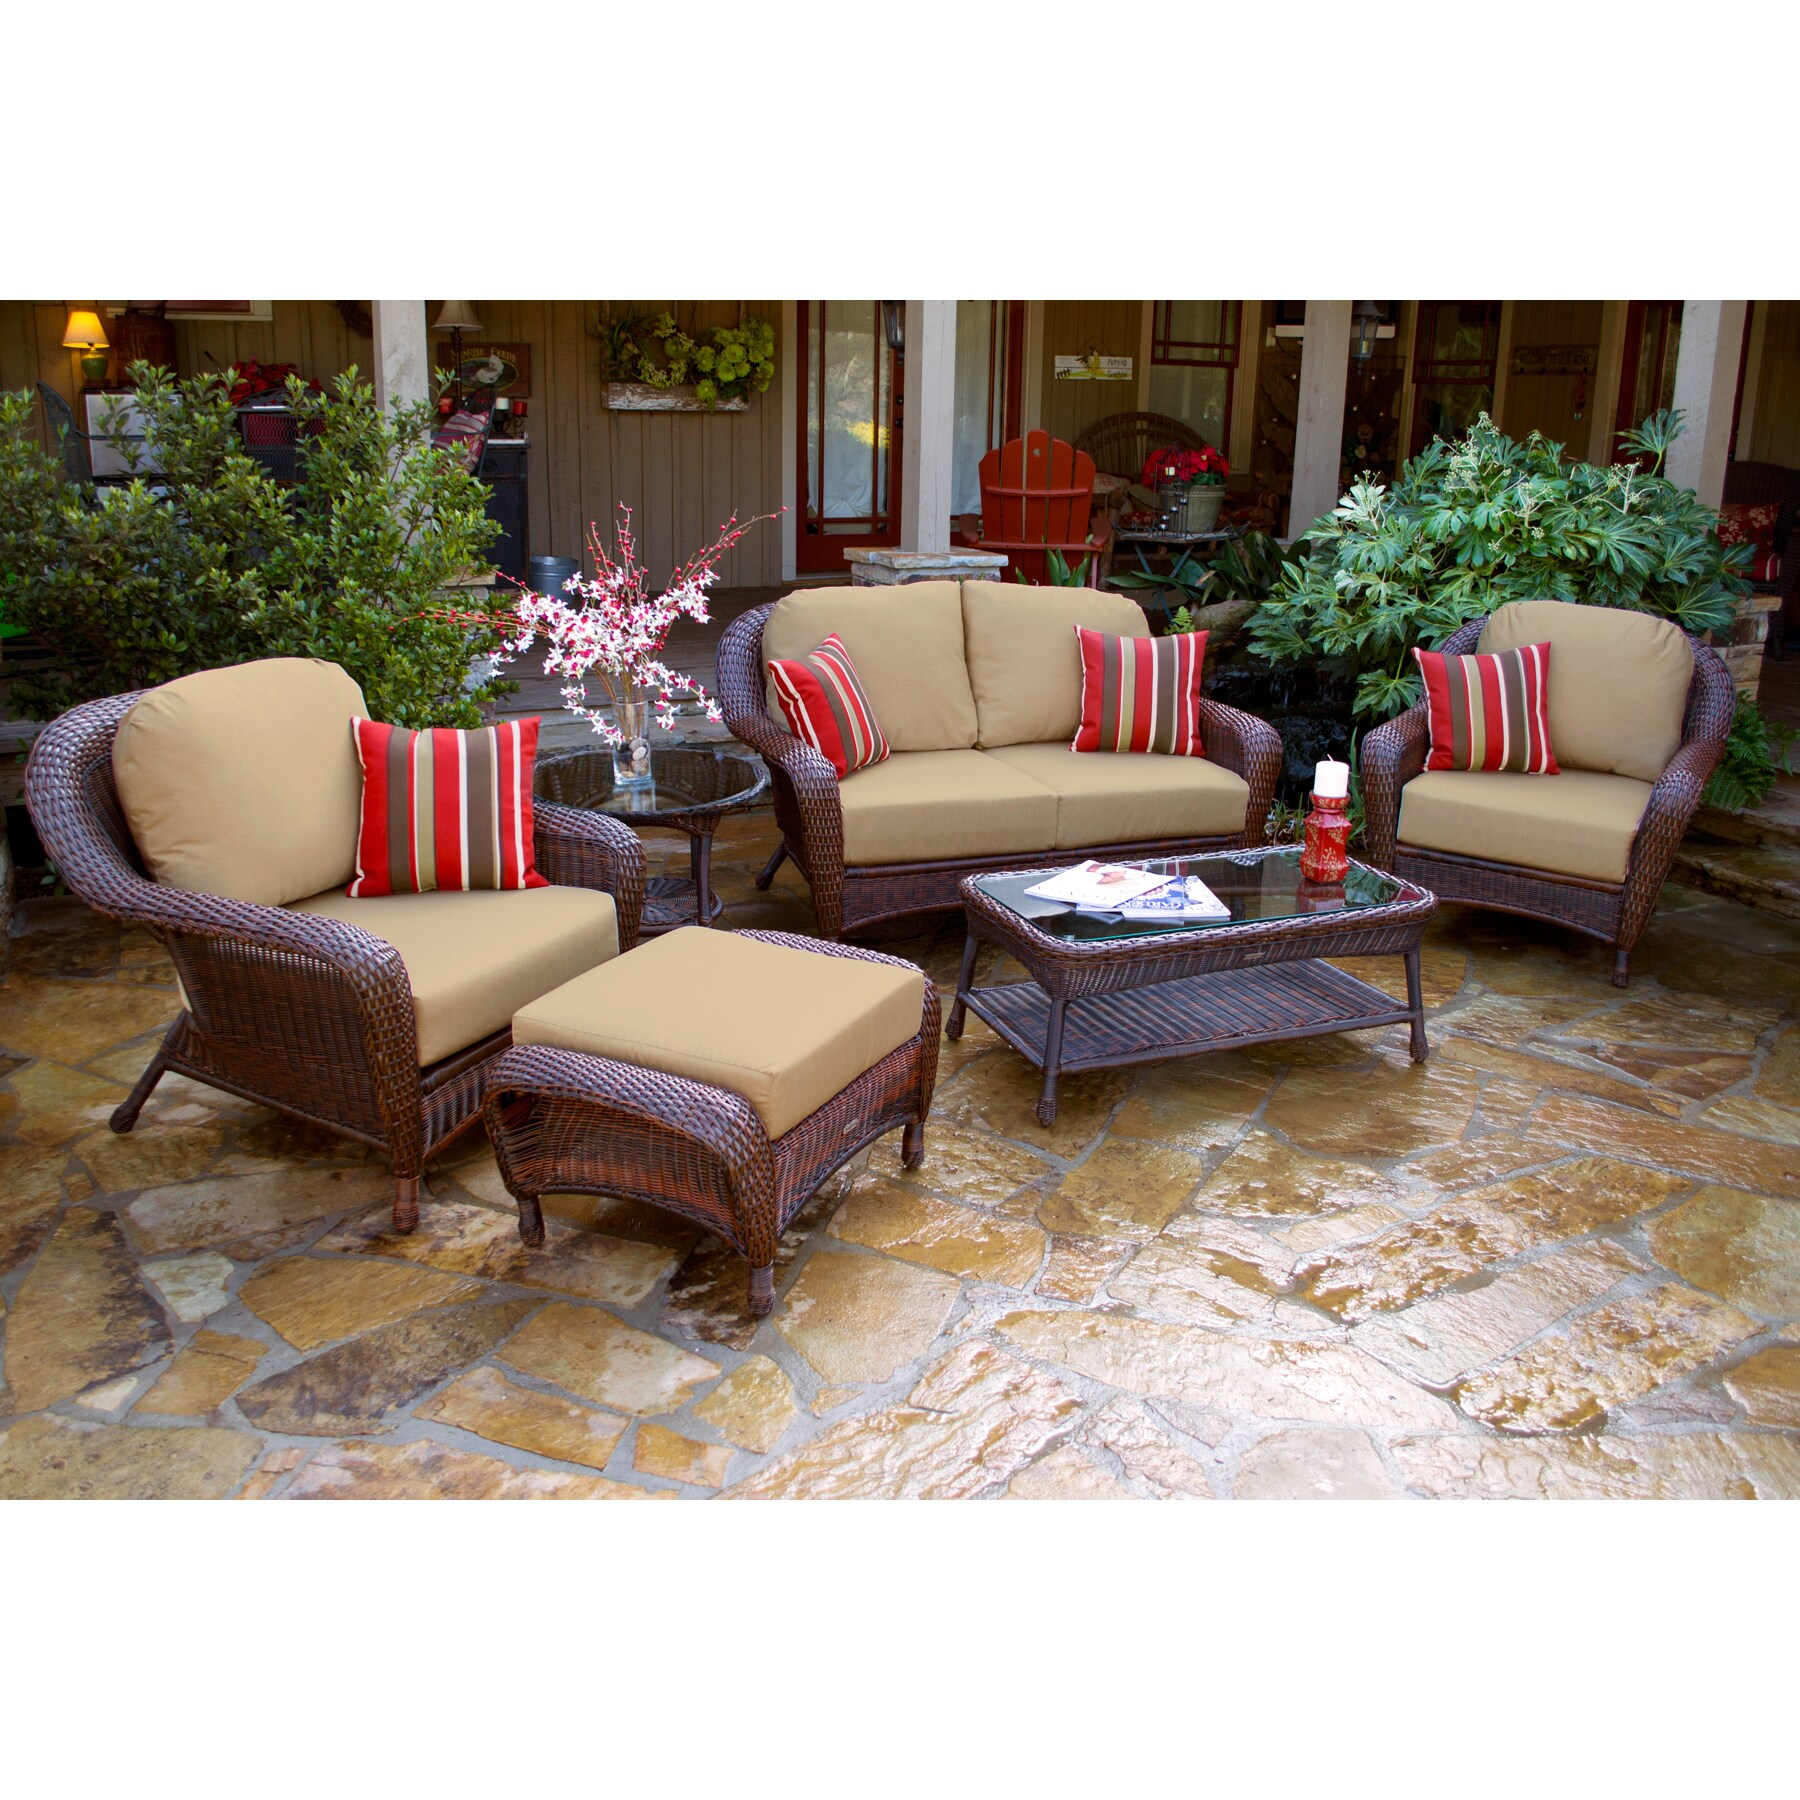 Lexington Brown Wicker Outdoor 6 Piece Patio Furniture Set with